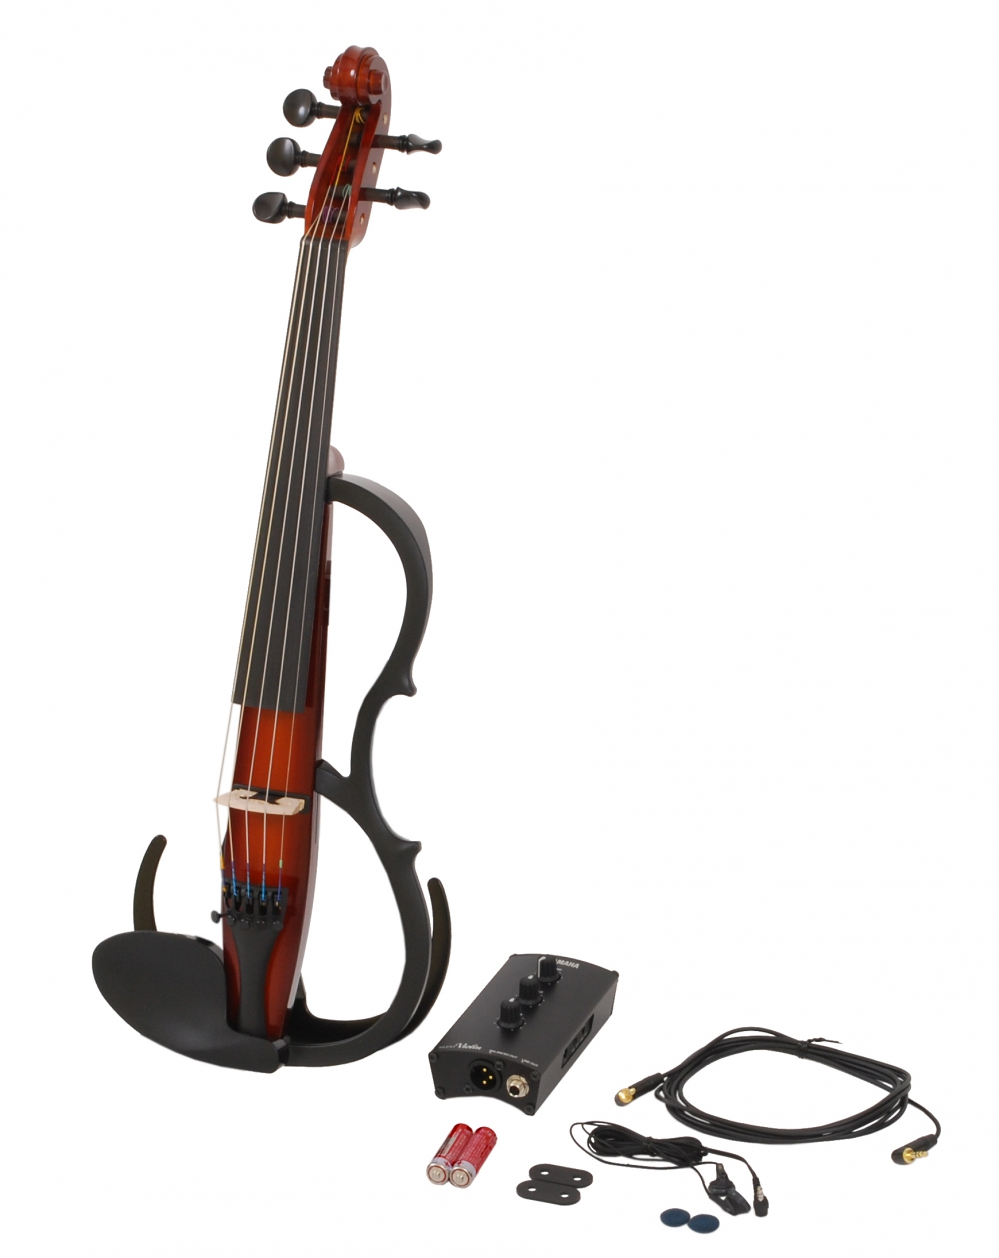 Yamaha sv255 br silent violin 5 string electric violin brown for Yamaha svc 110sk silent electric cello brown